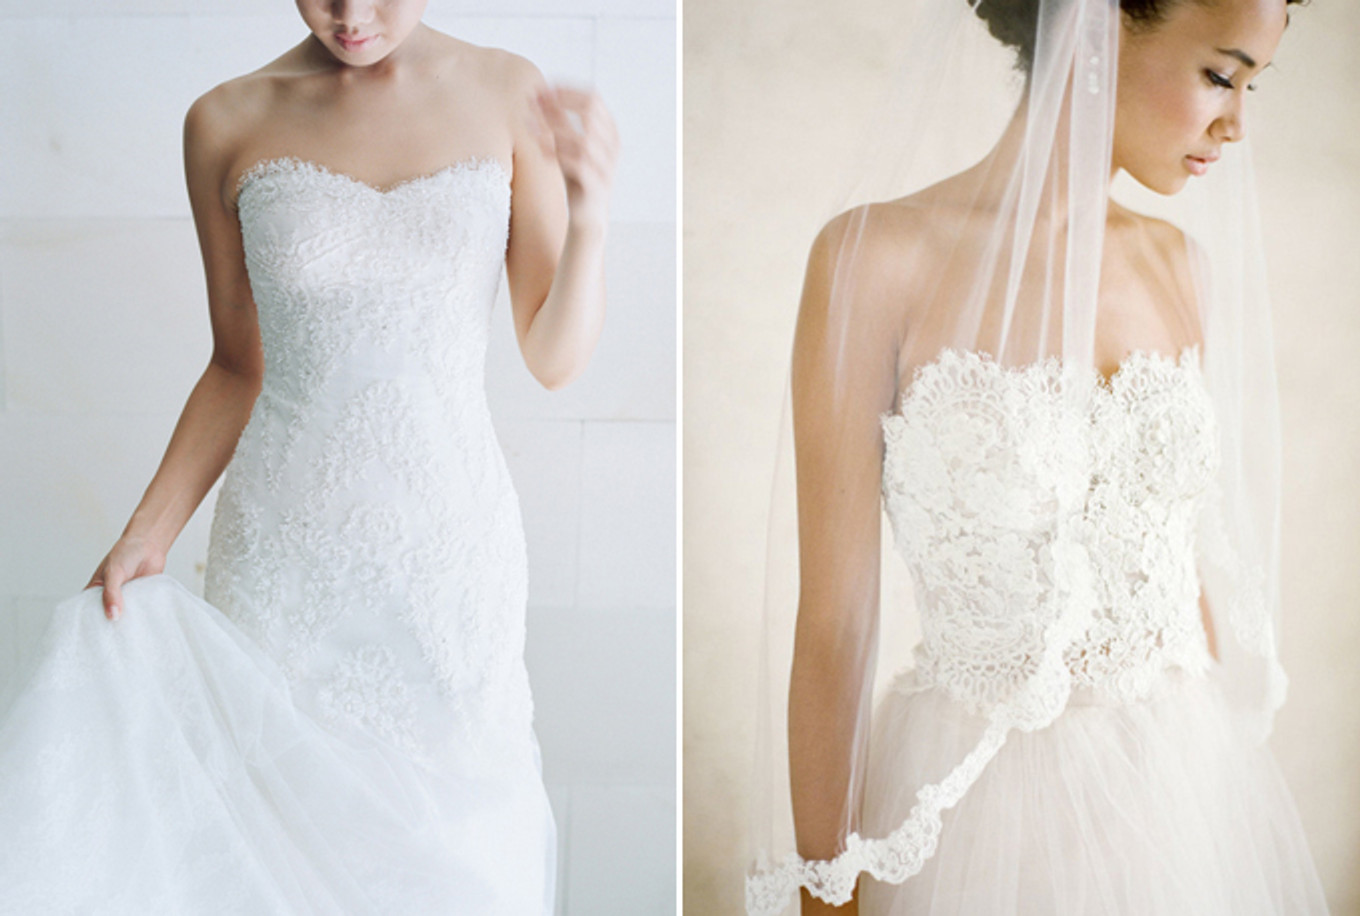 The brides guide to finding the perfect wedding dress add to board ombrellifo Images